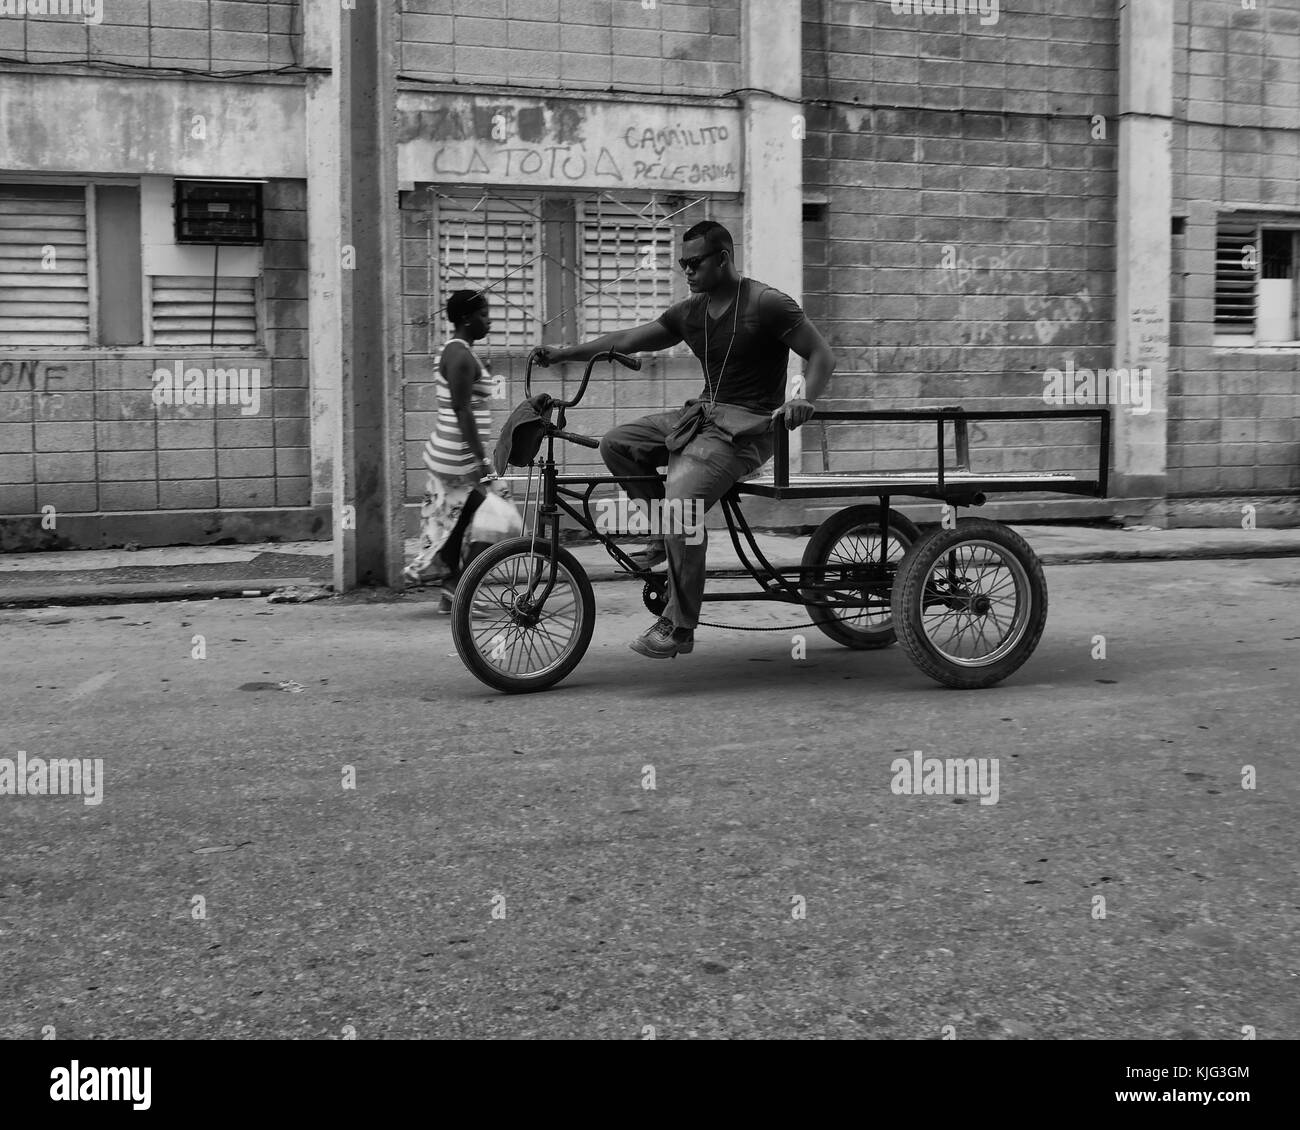 Afro Caribbean Cuban male rides a tricycle past an adult female. Havana, Cuba - Stock Image